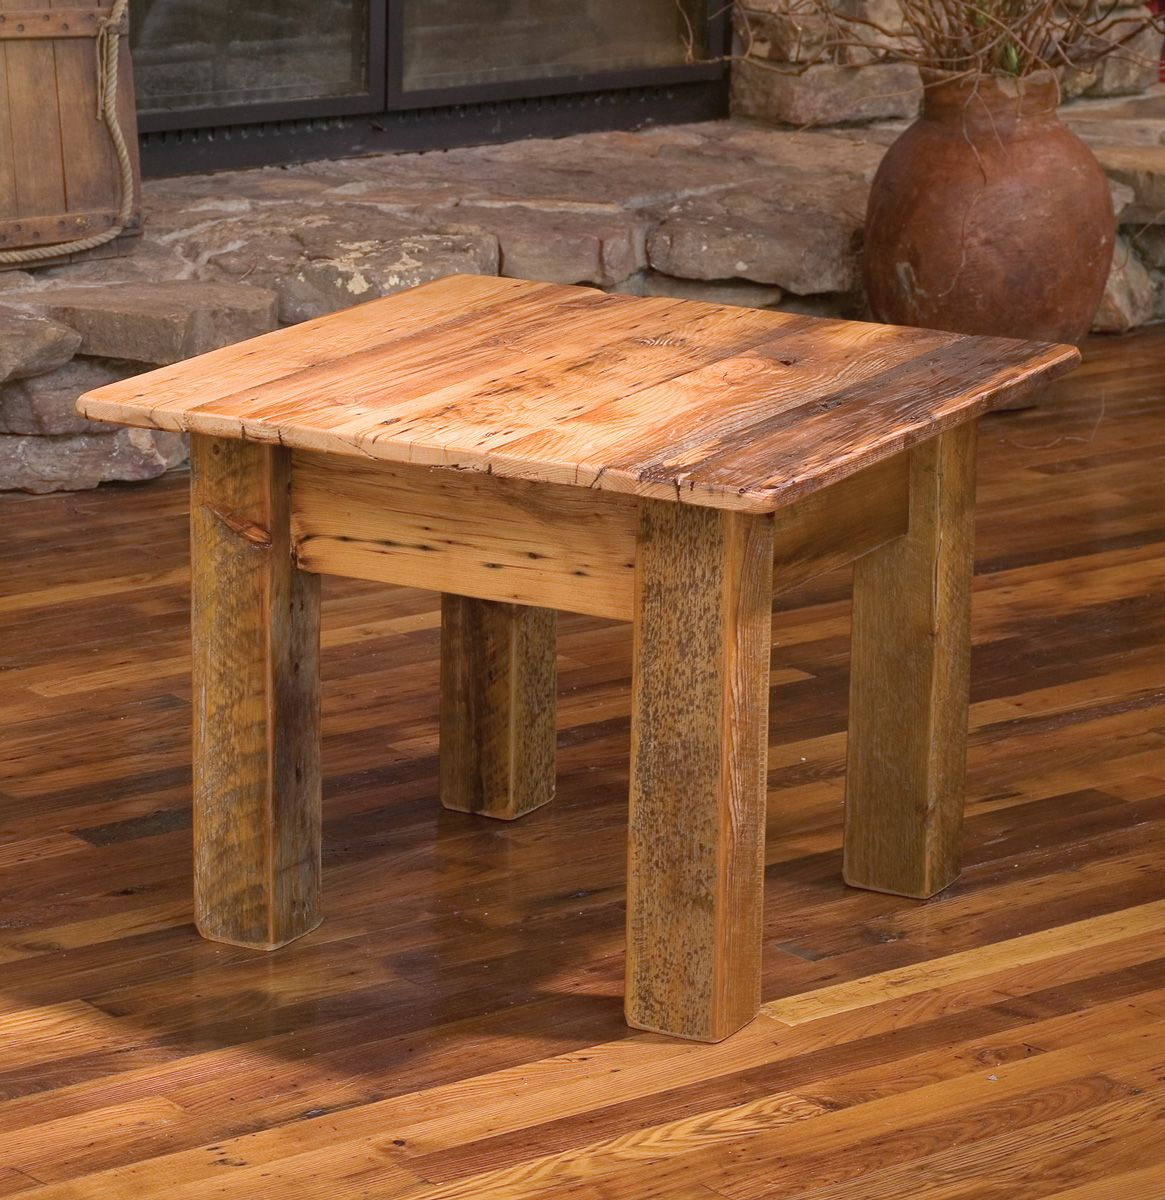 Simple end table using rough 4x4's for legs Barnwood